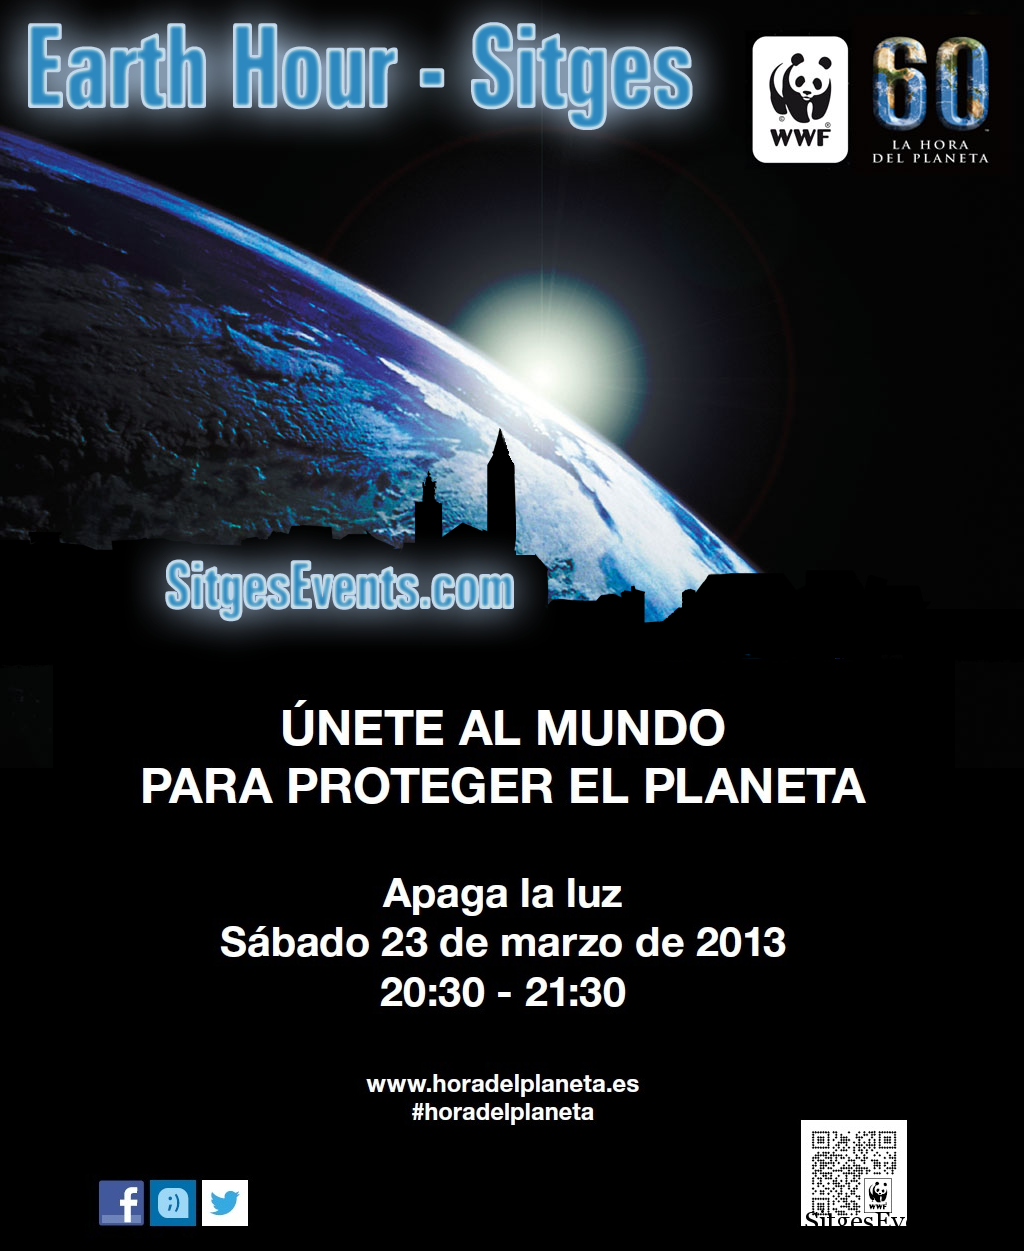 L'Hora del Planeta – Earth Hour in Sitges 2015